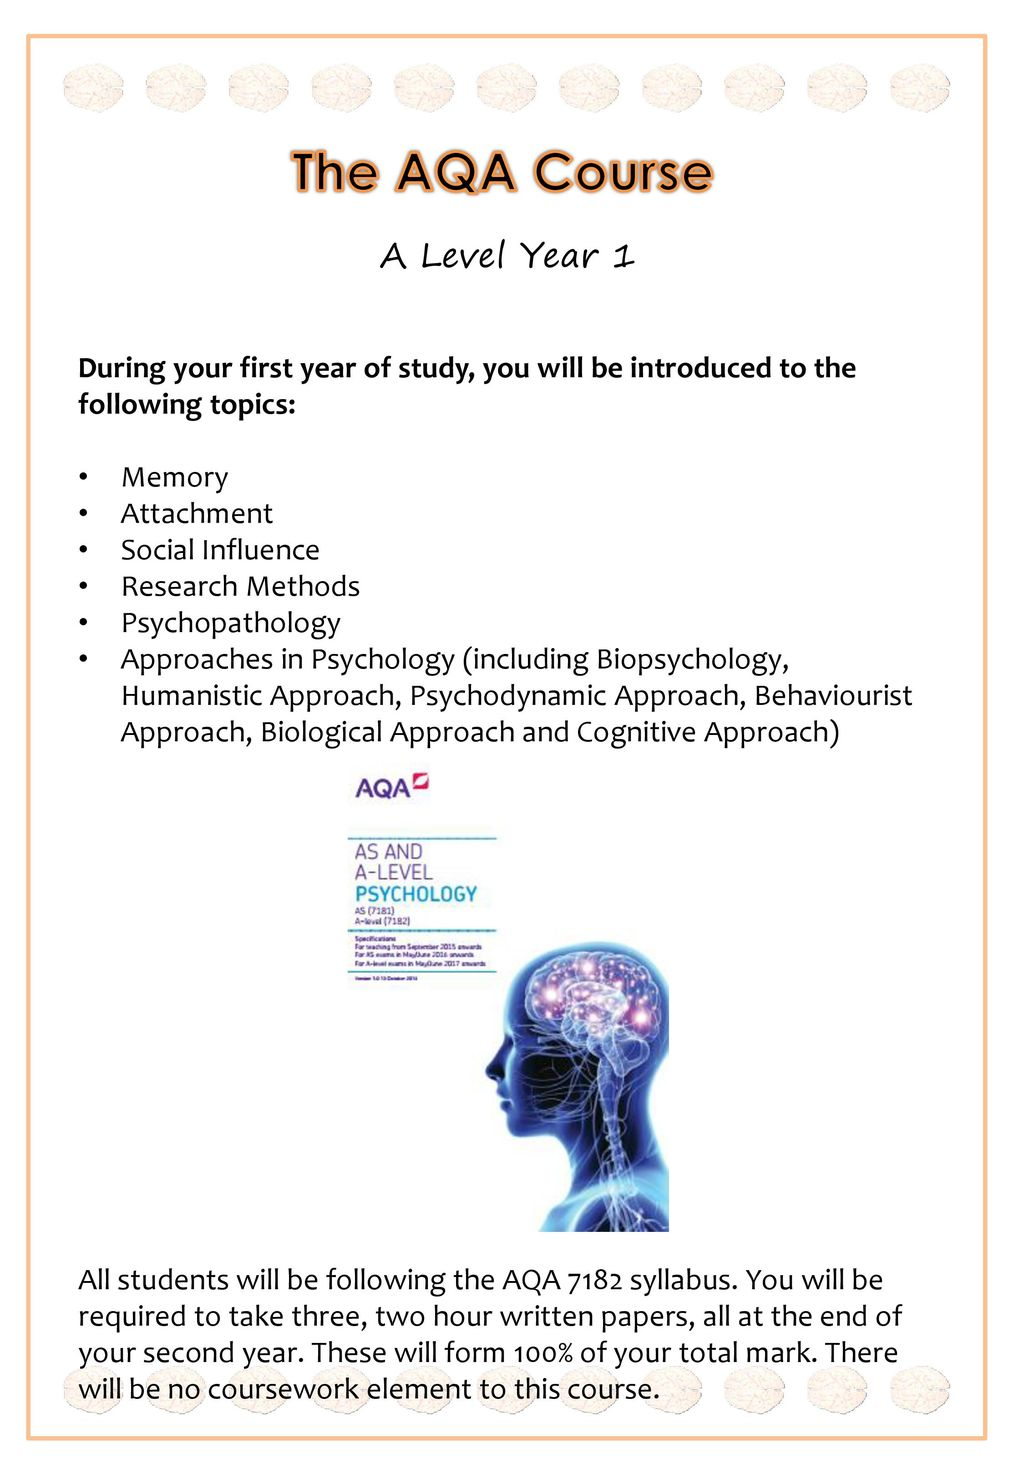 psychologists study which of the following topics